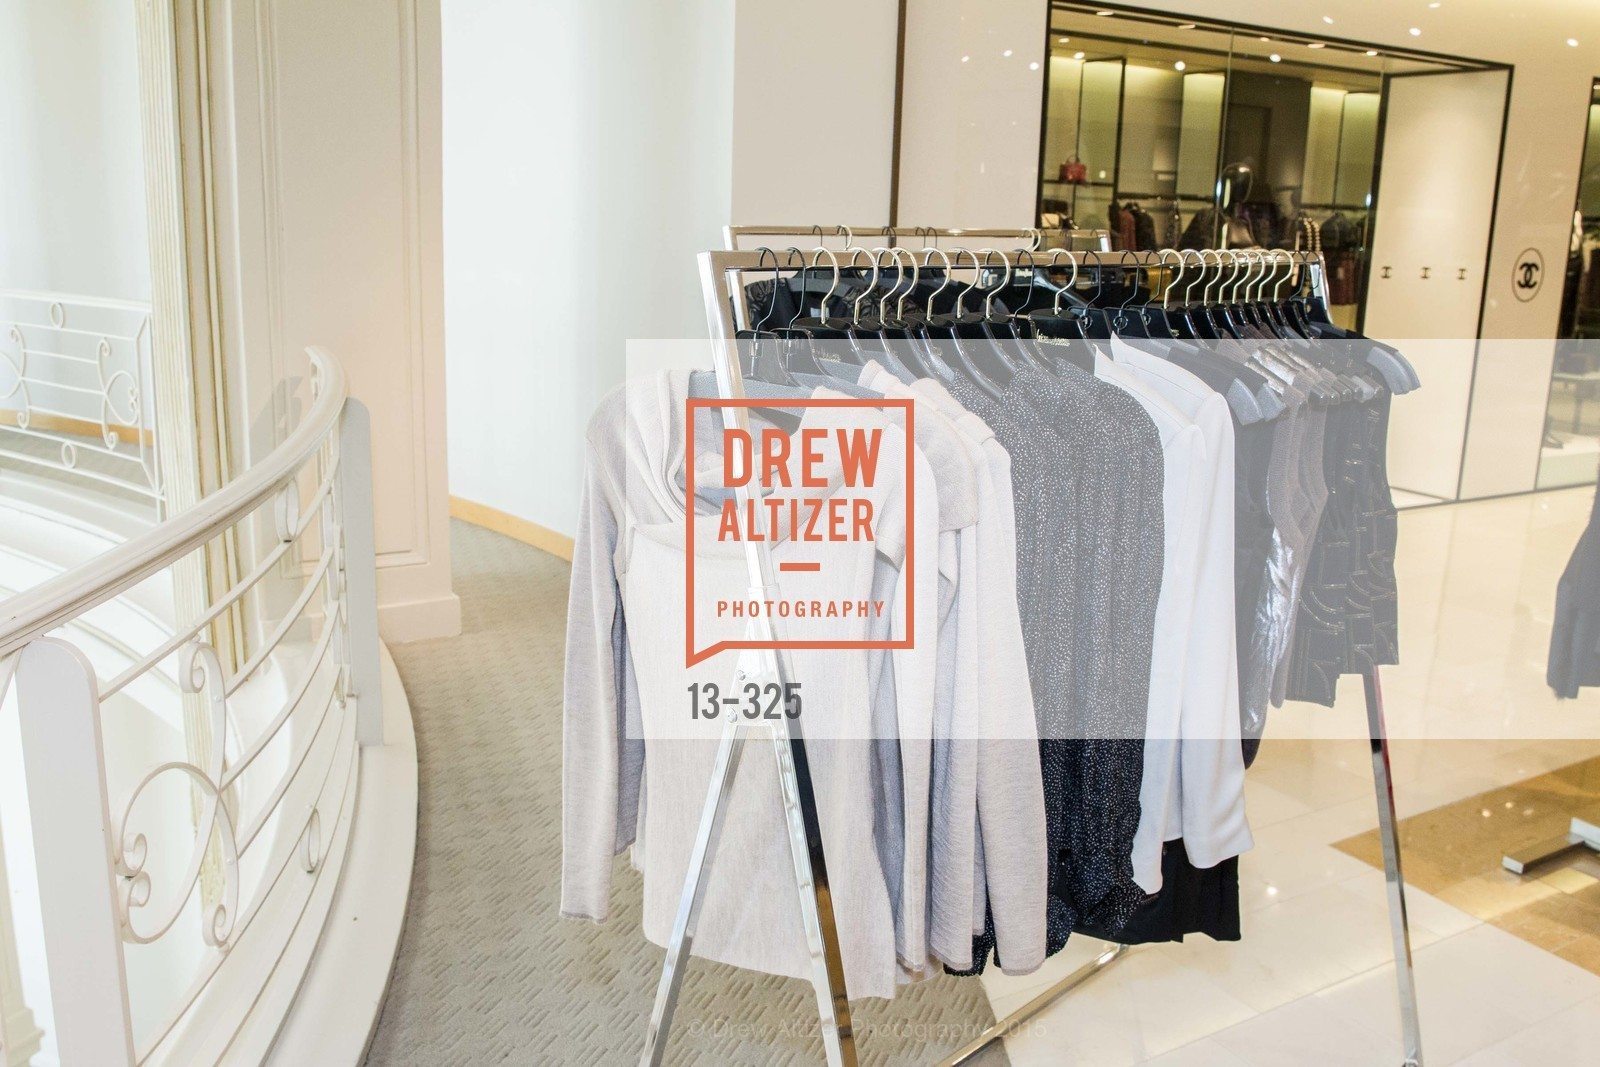 Atmosphere, Maiyet Reception at Neiman Marcus, September 29th, 2015, Photo,Drew Altizer, Drew Altizer Photography, full-service event agency, private events, San Francisco photographer, photographer California